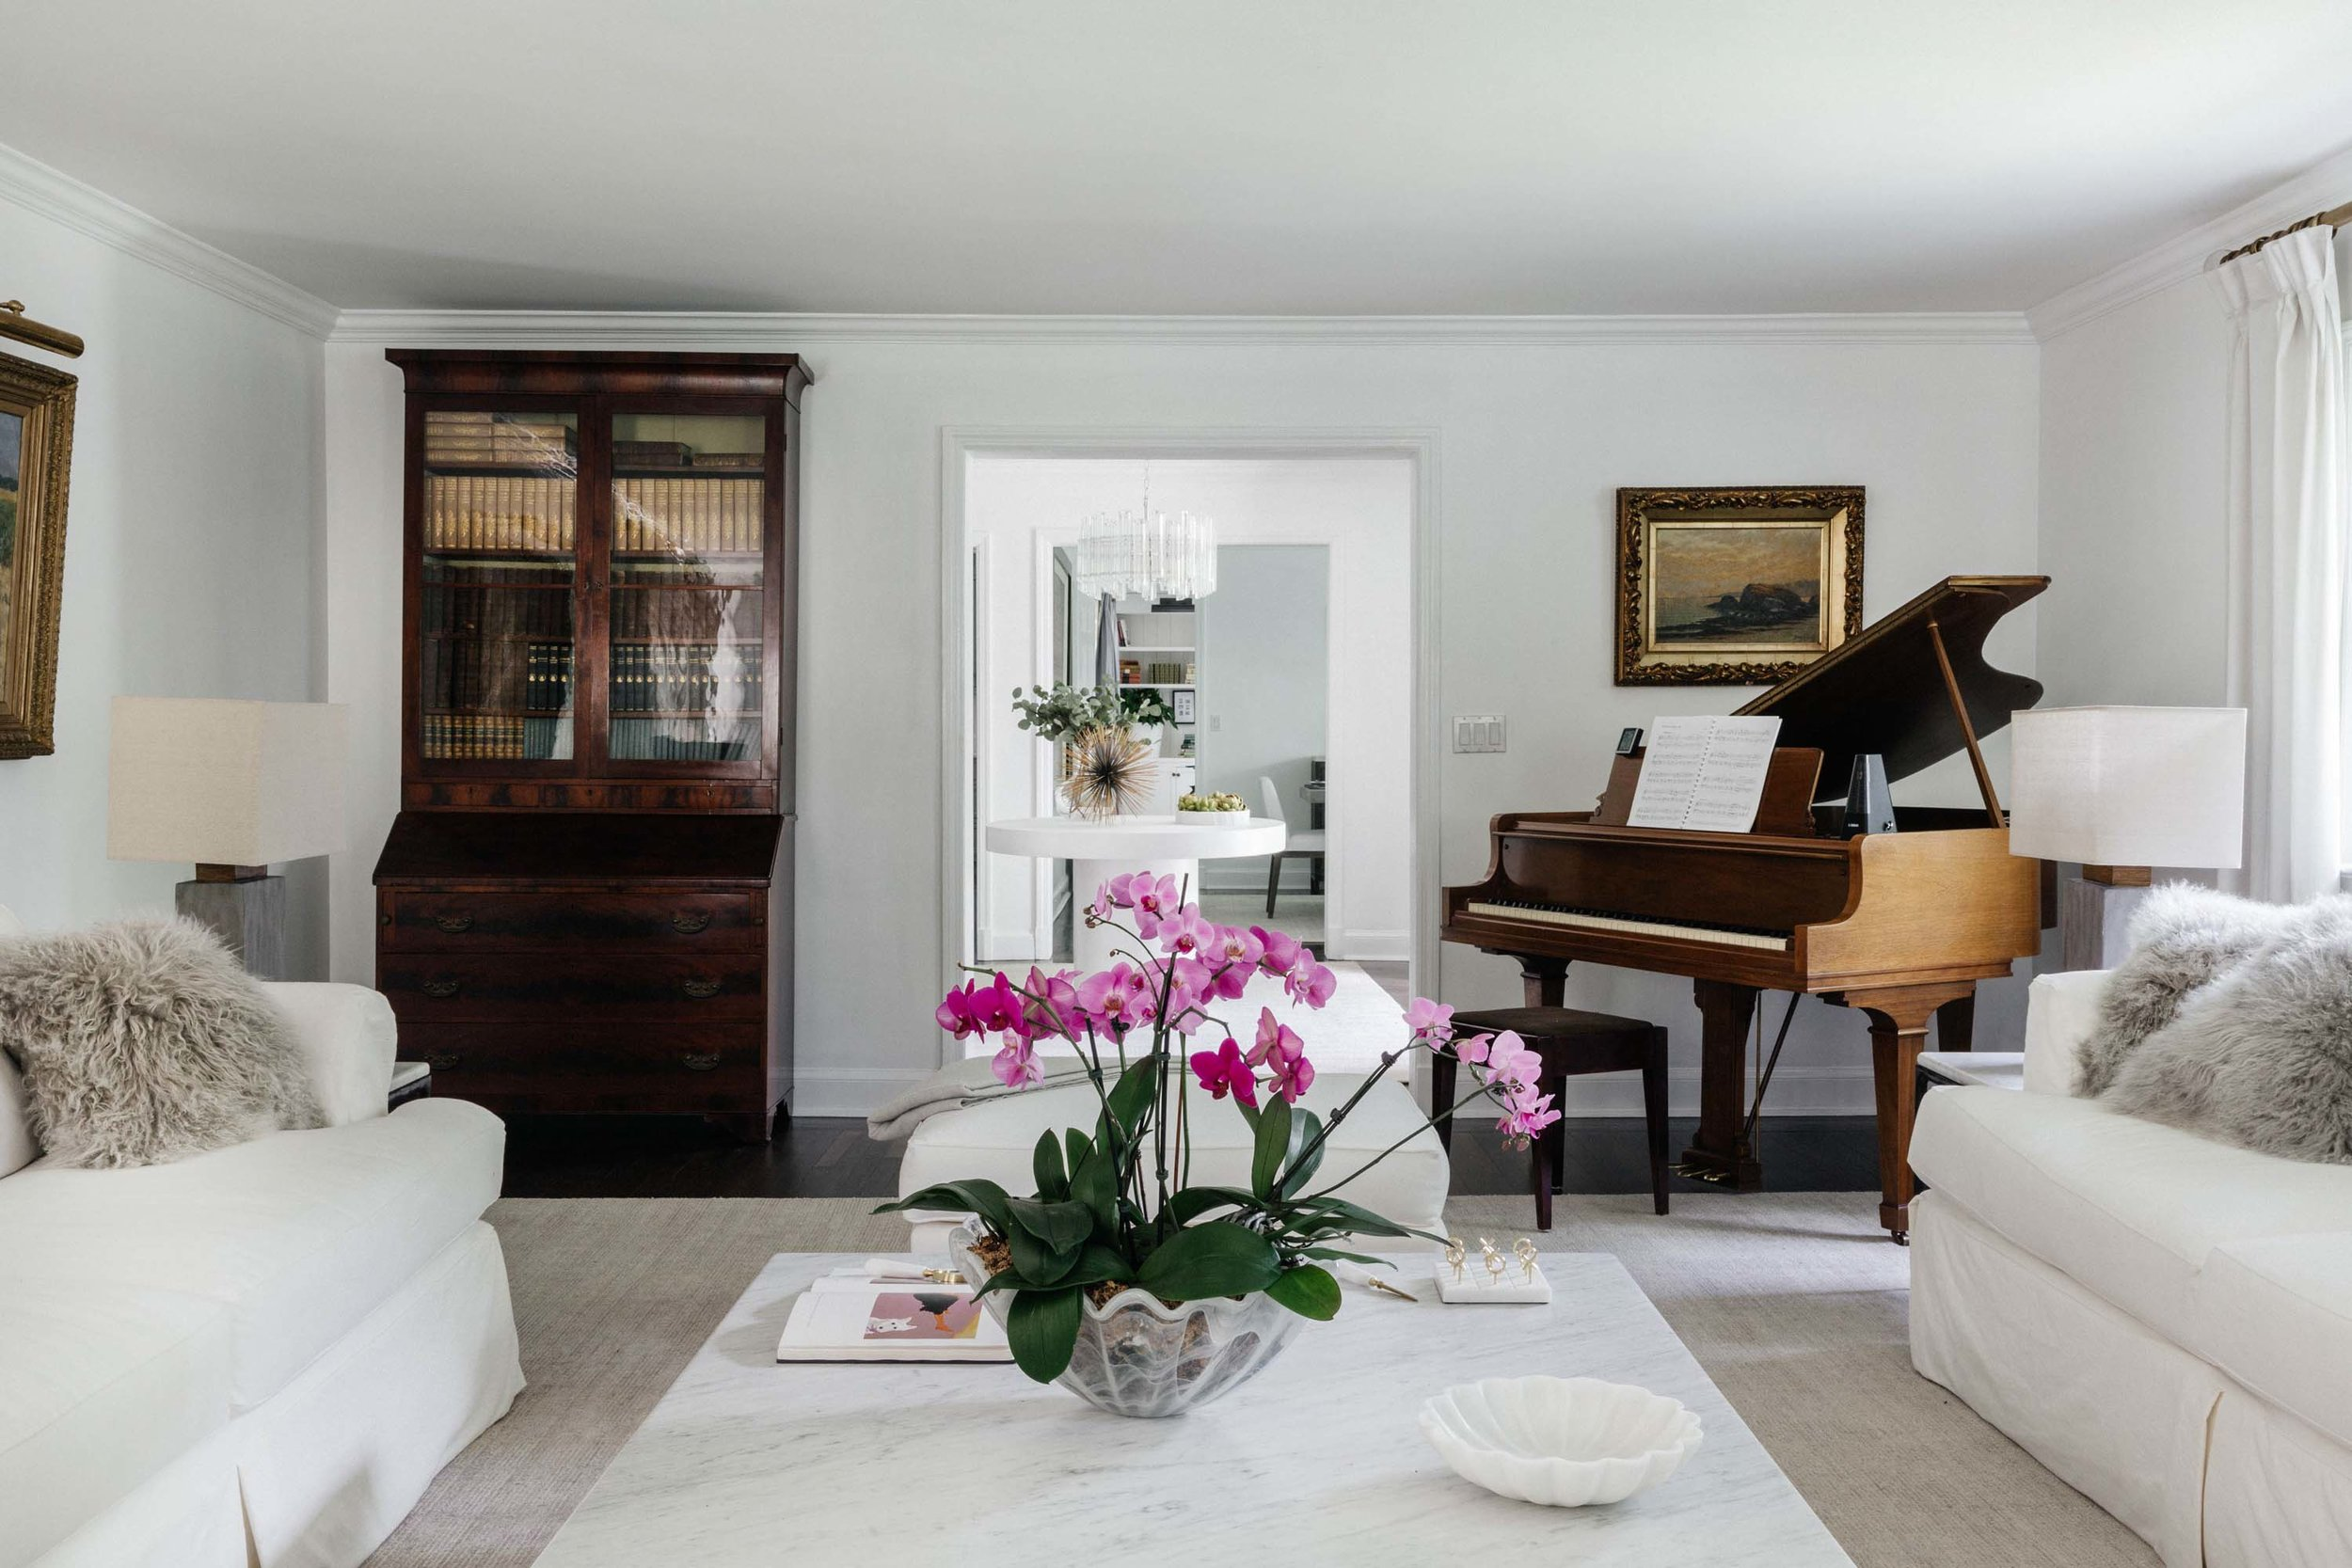 Living room with white painted walls, white sofa, center table and grand piano